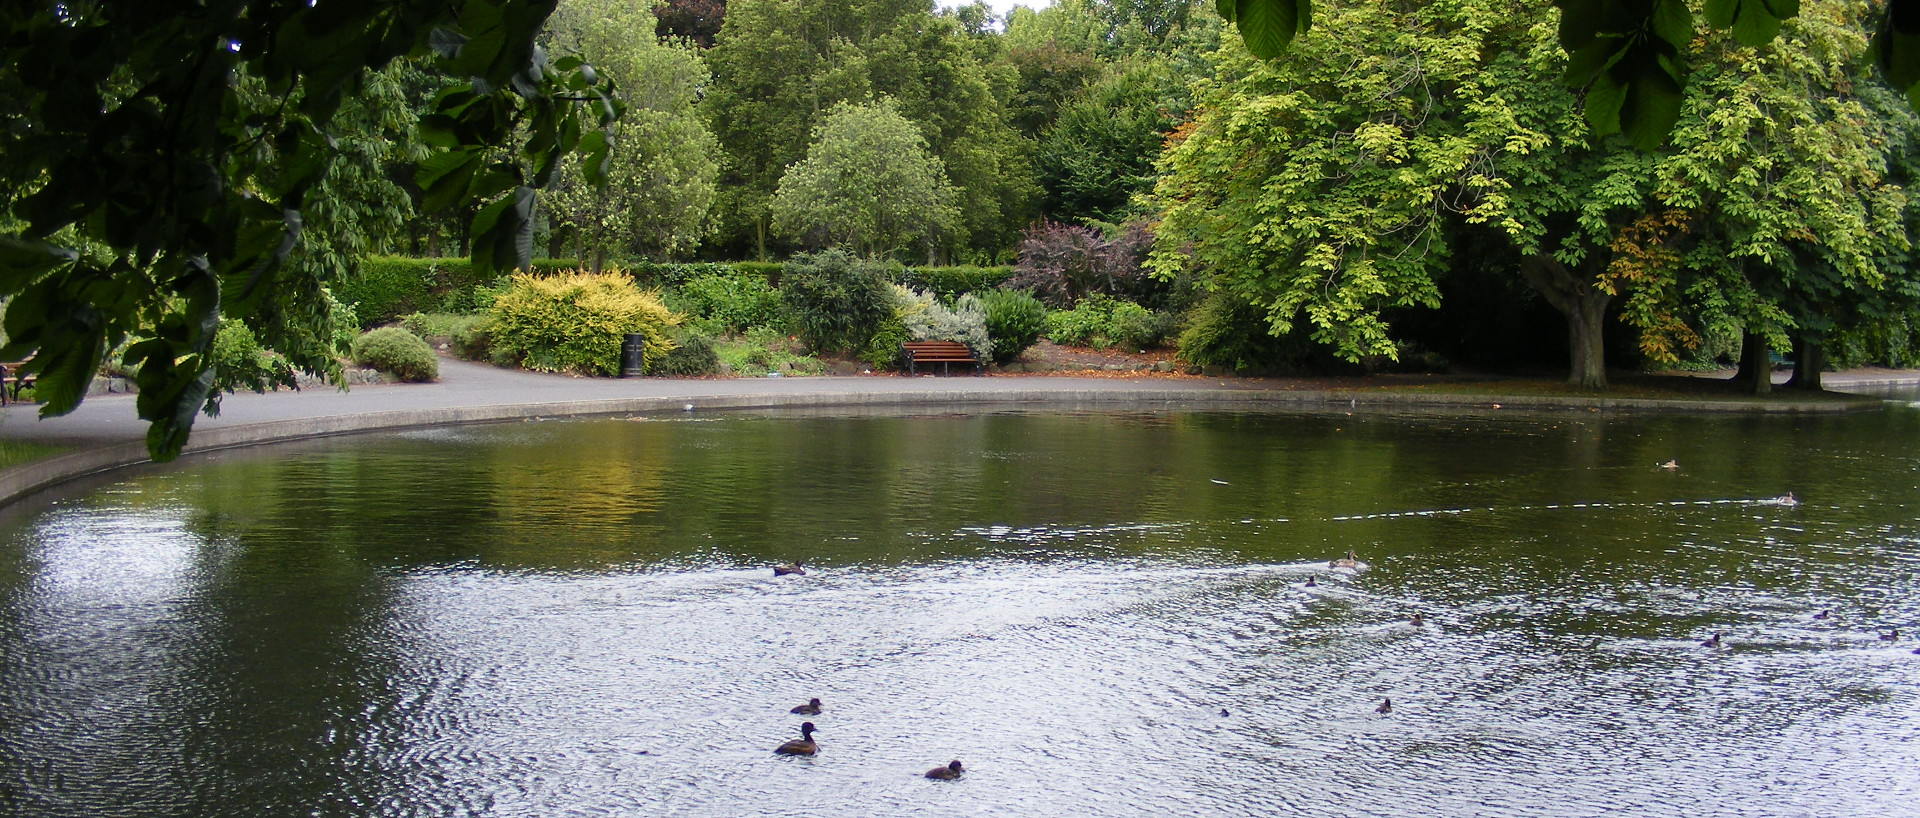 Herbert Park near PREMIER SUITES Ballsbridge